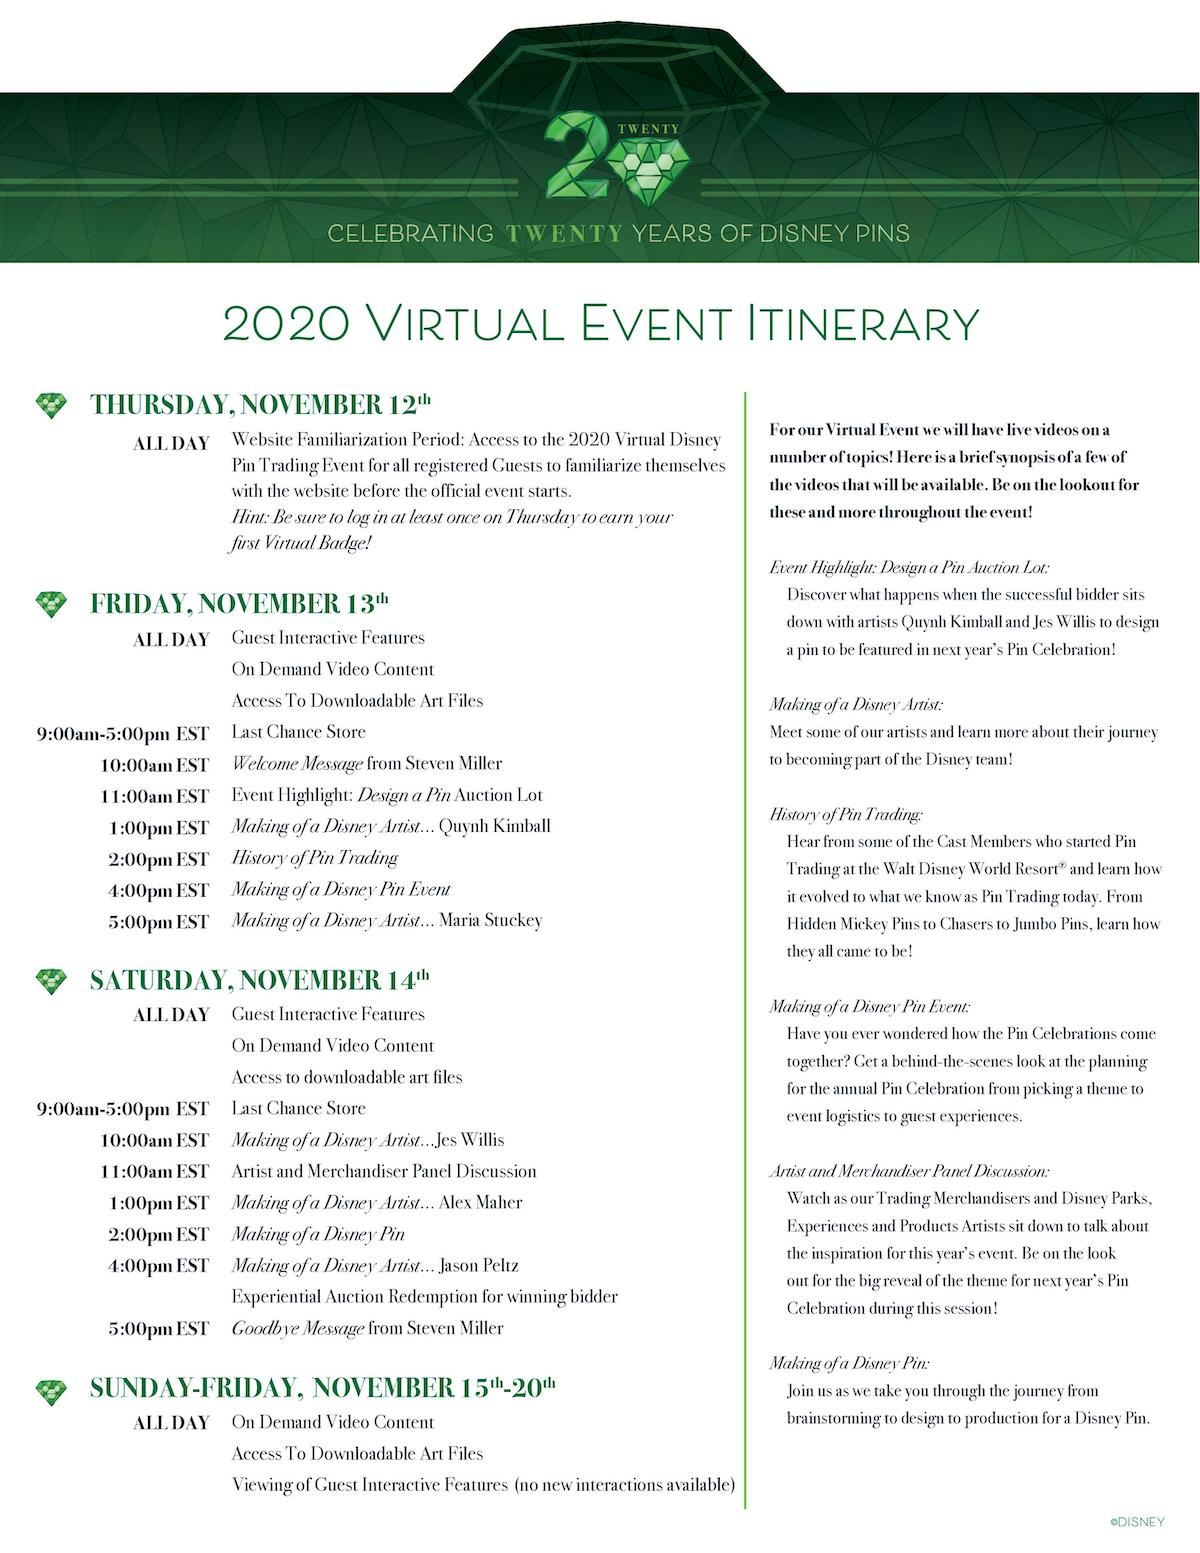 Celebrating 20 Years of Disney Pins 2020 Virtual Event Itinerary